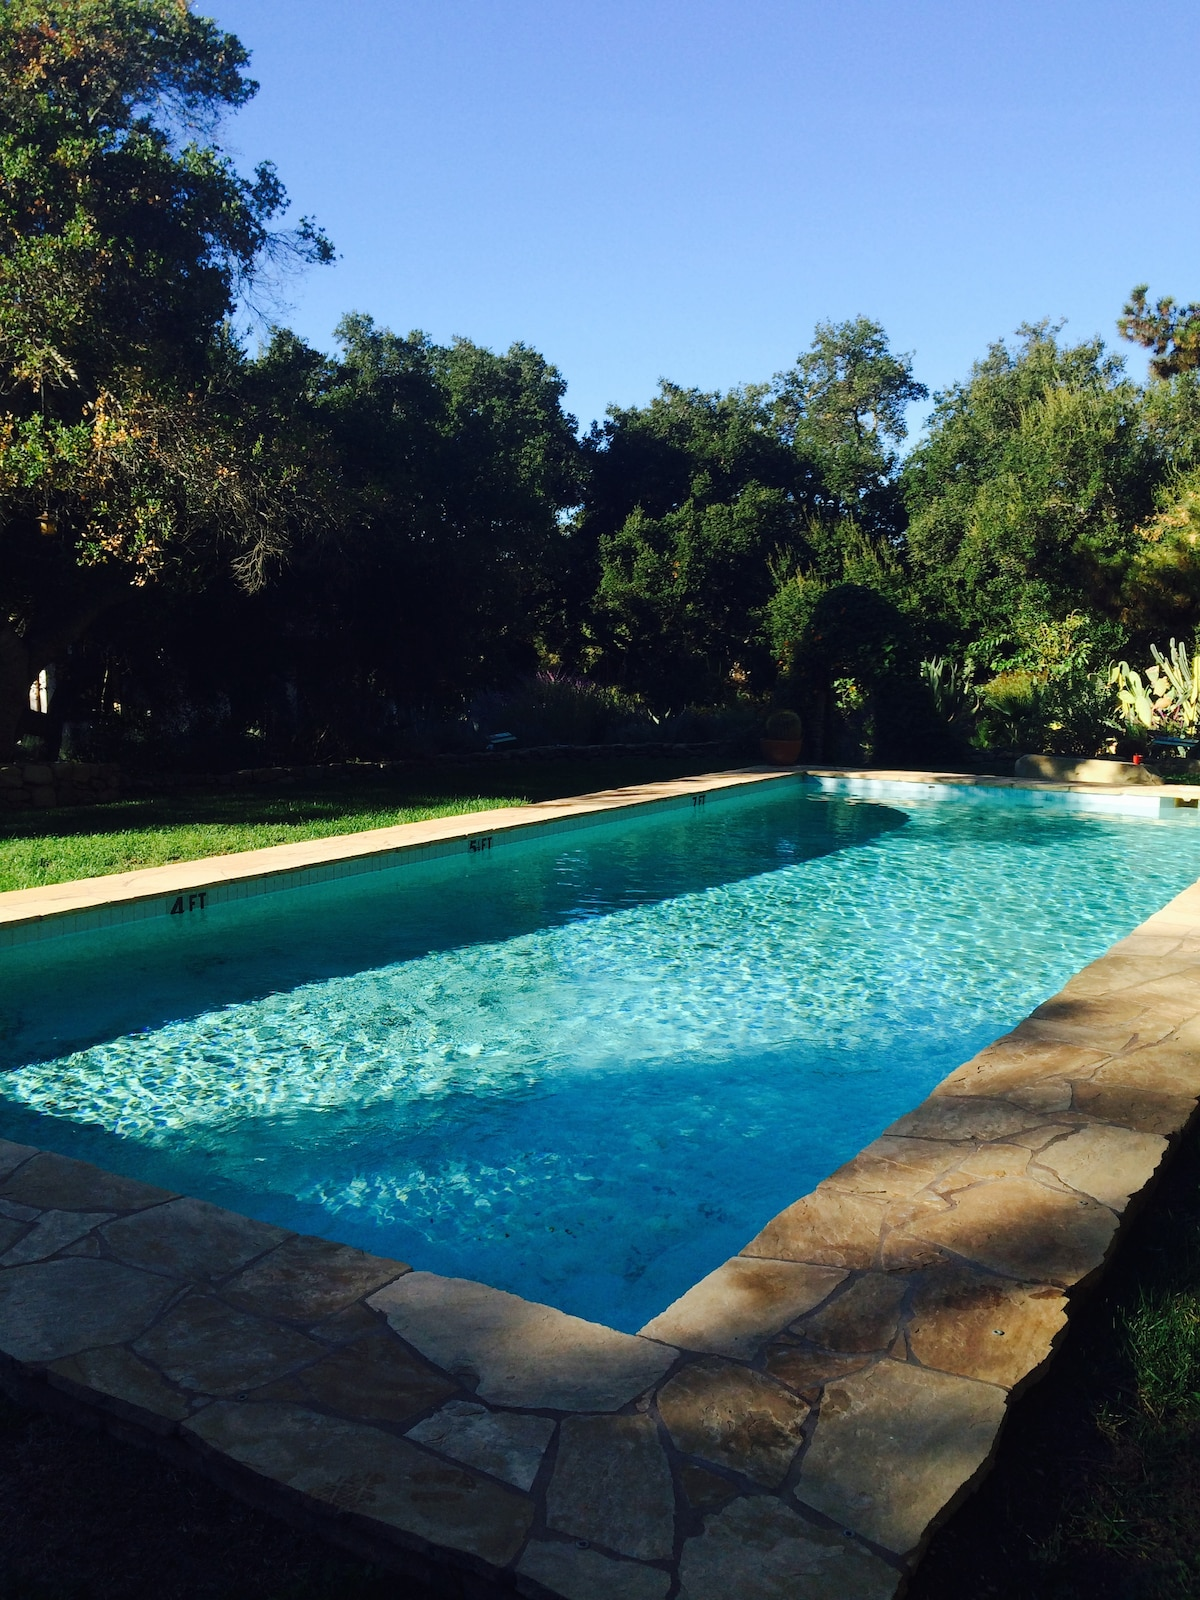 Chic Designer Home Pool and Gardens